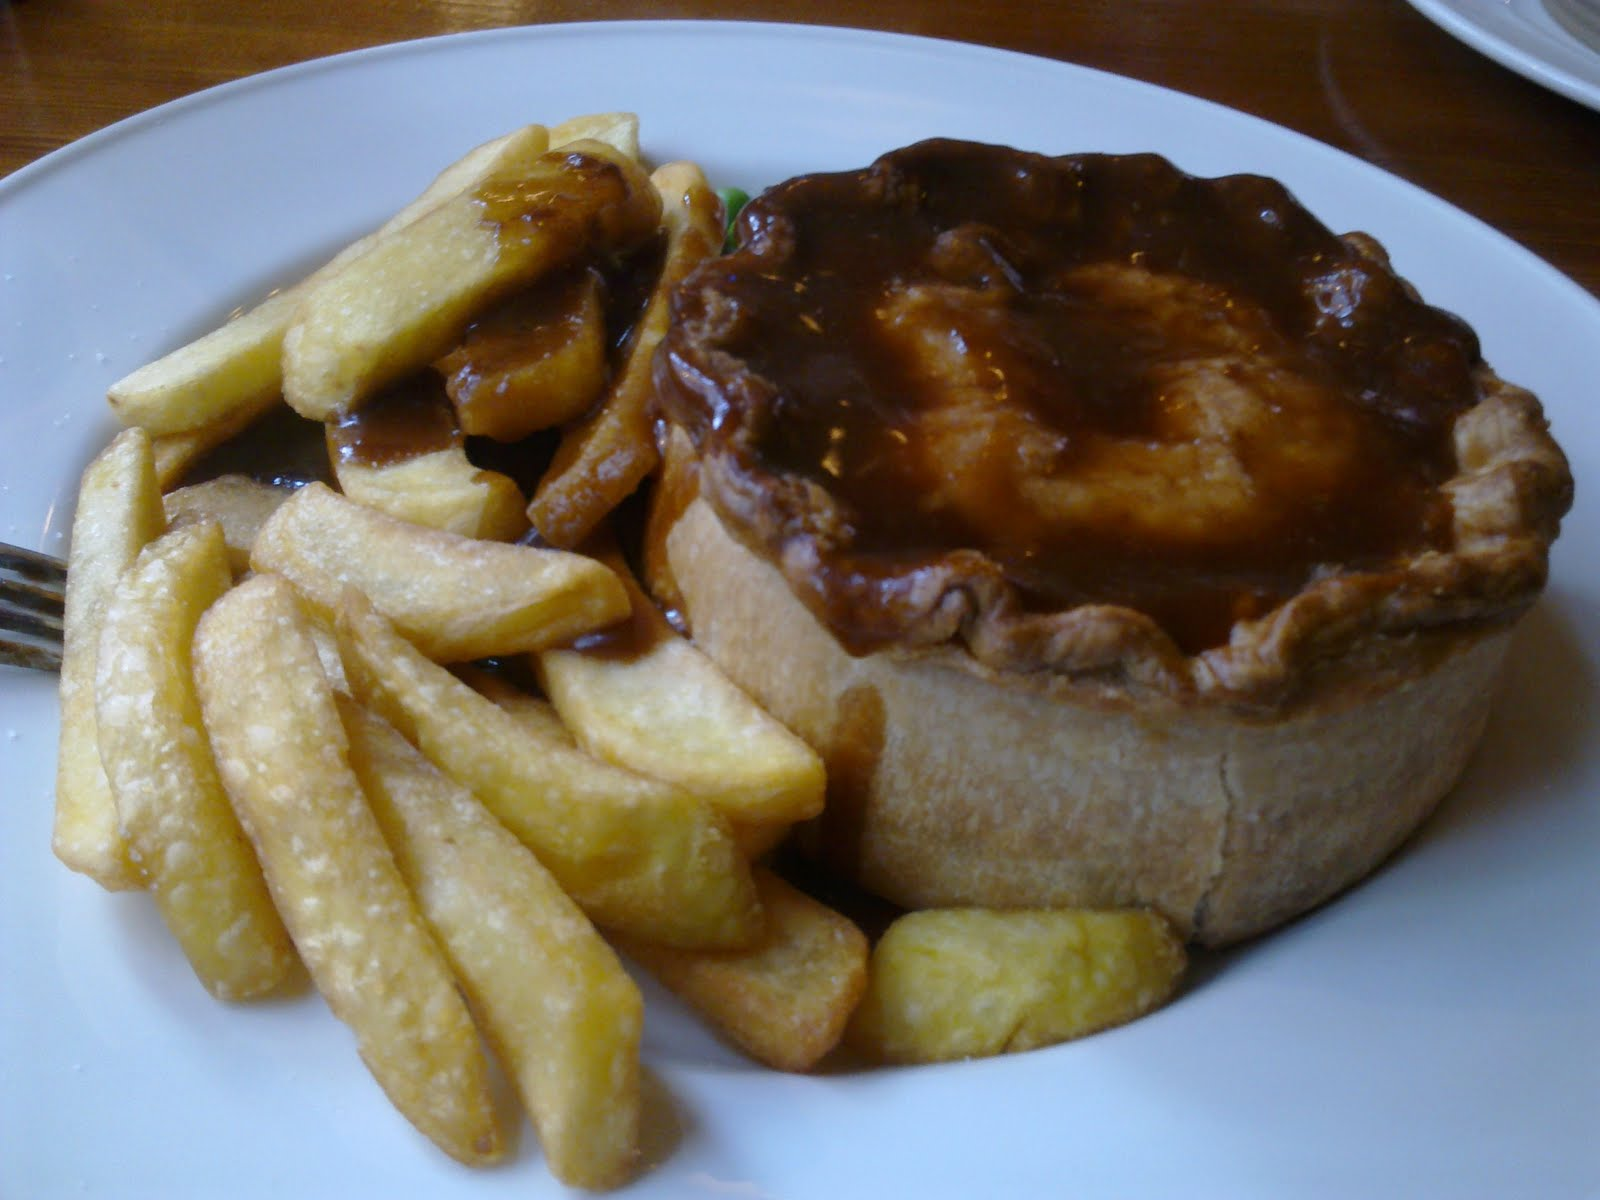 Pierate - Pie Reviews: A taste of Ireland...the Steak and ...